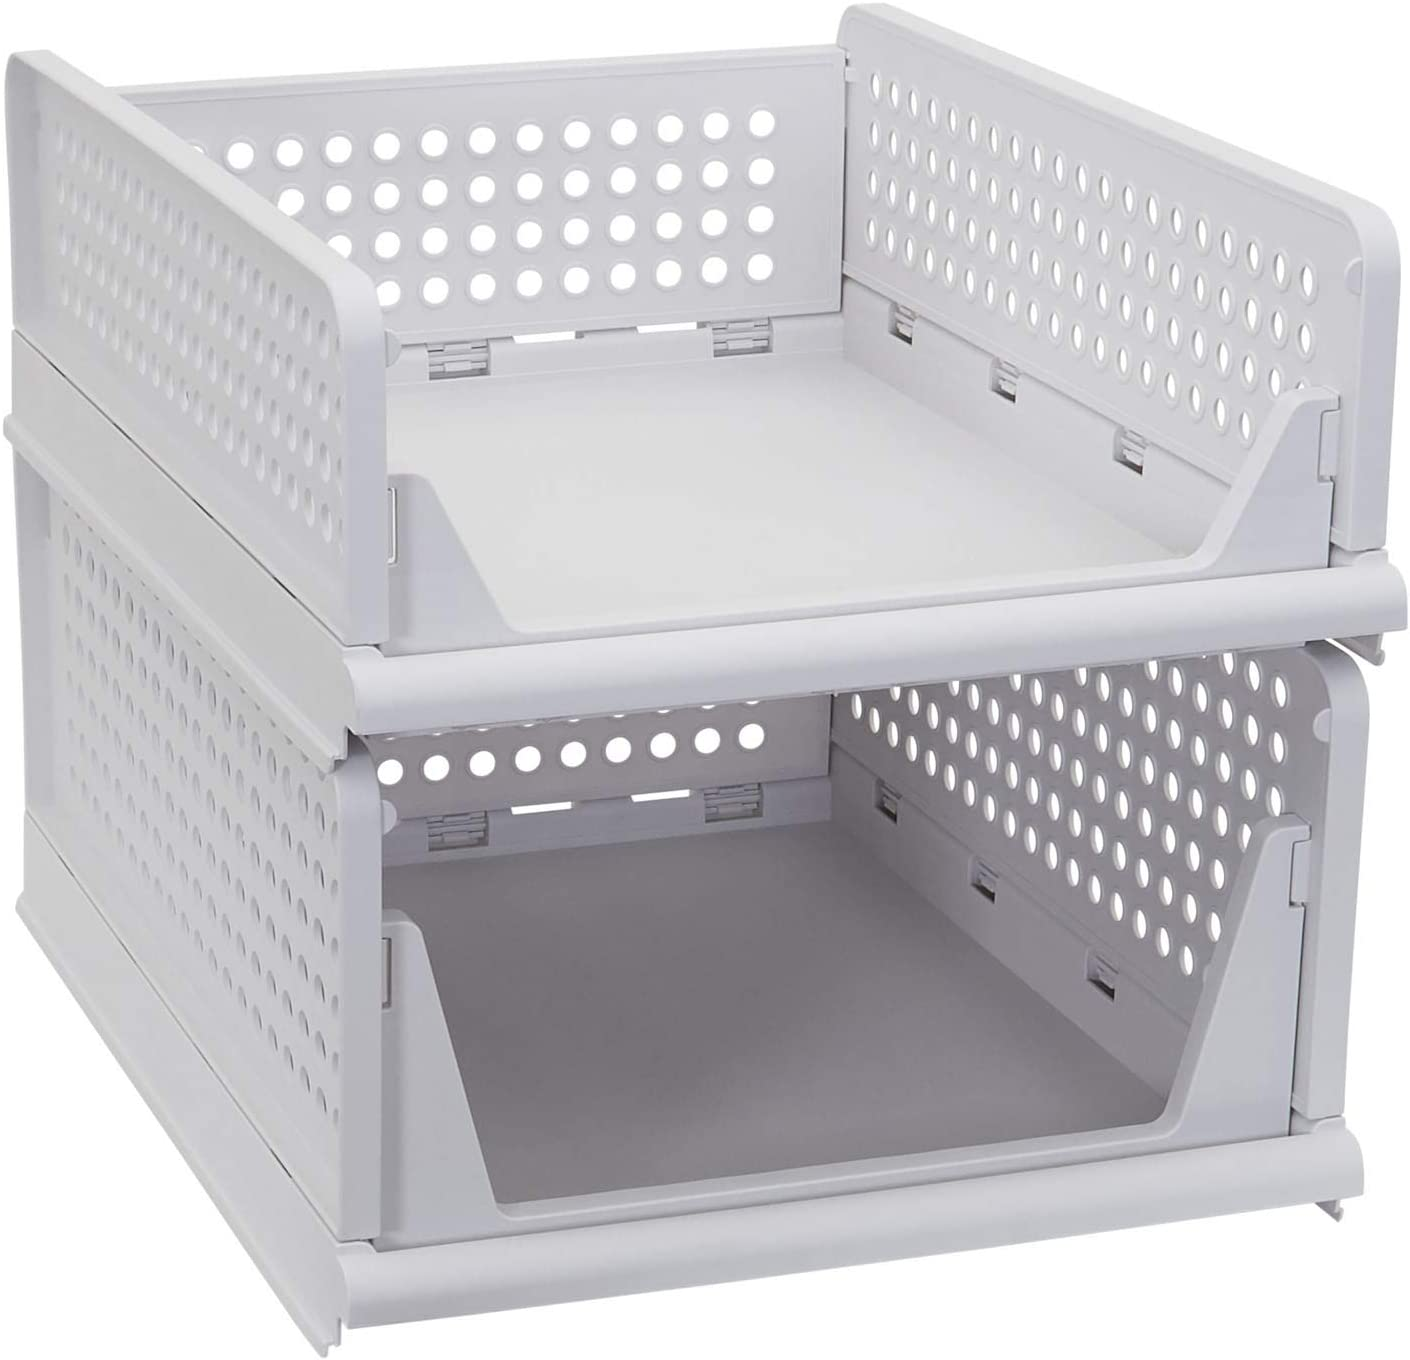 Household Essentials White Stackable Desk Tray security 2 Tall a Fresno Mall Set of